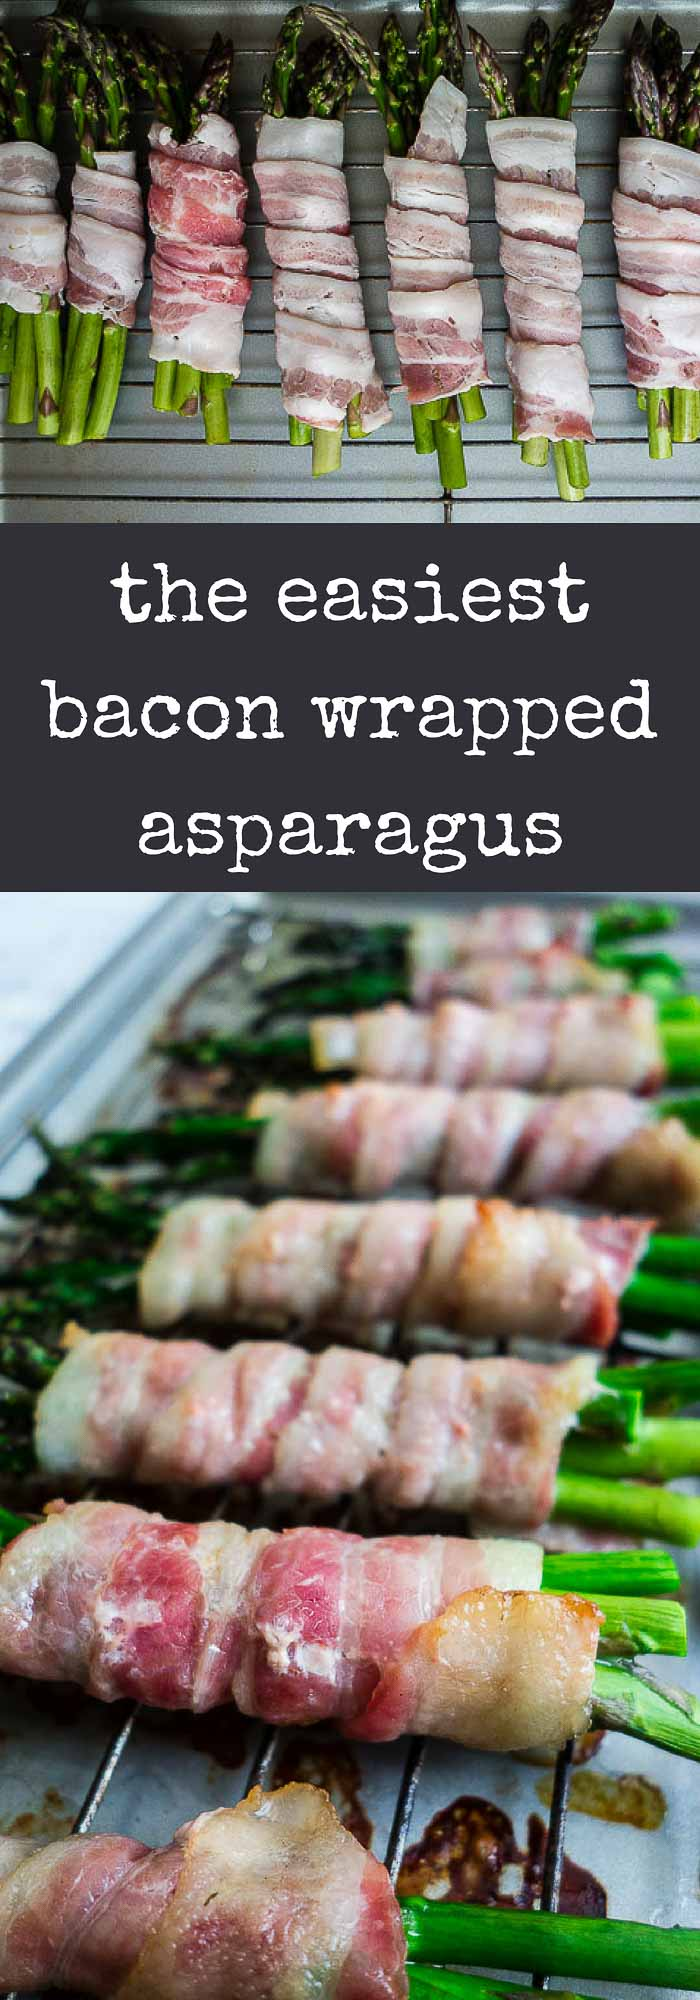 This oven baked Bacon Wrapped Asparagus Recipe is super easy to make right in the oven for perfectly crispy bacon and tender asparagus!crispy bacon wrapped asparagus | party appetizers | game day food | bacon wrapped asparagus bundles | easy bacon wrapped asparagus | bacon appetizers | game day recipes | asparagus recipes | how to cook asparagus | how to wrap vegetables in bacon